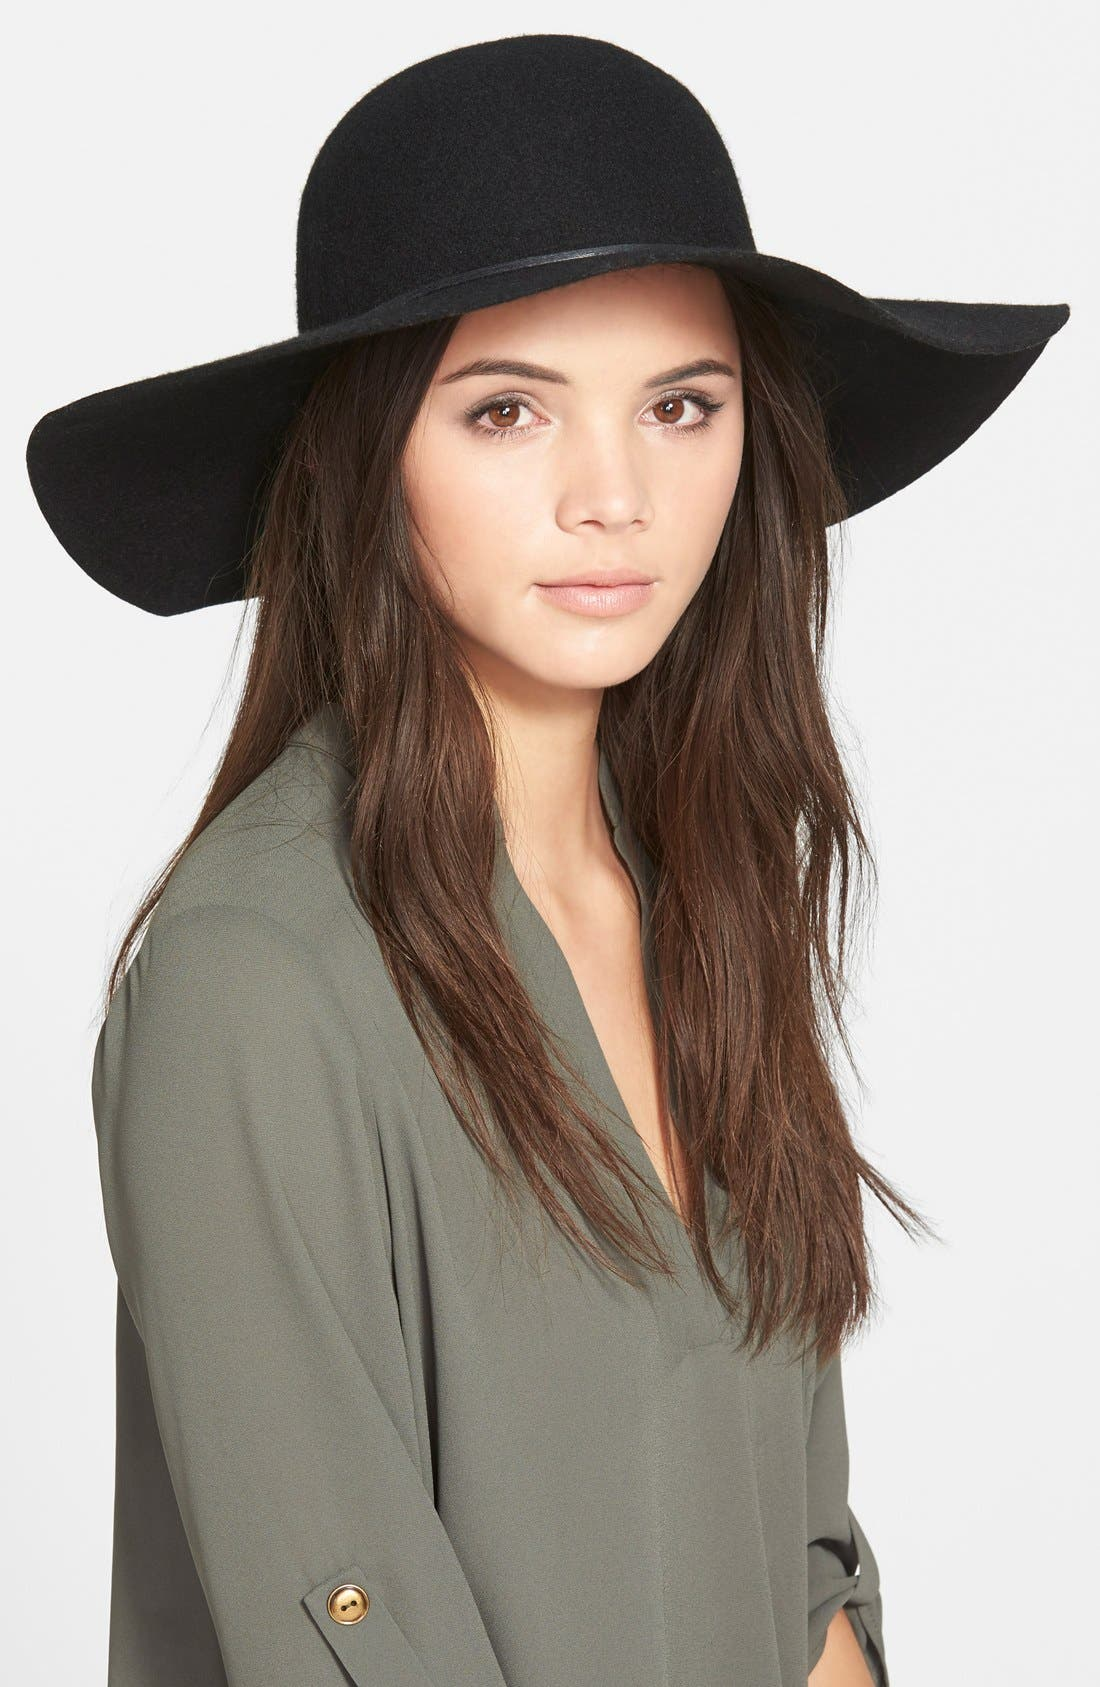 Alternate Image 1 Selected - BP. Rope Trim Floppy Felt Hat